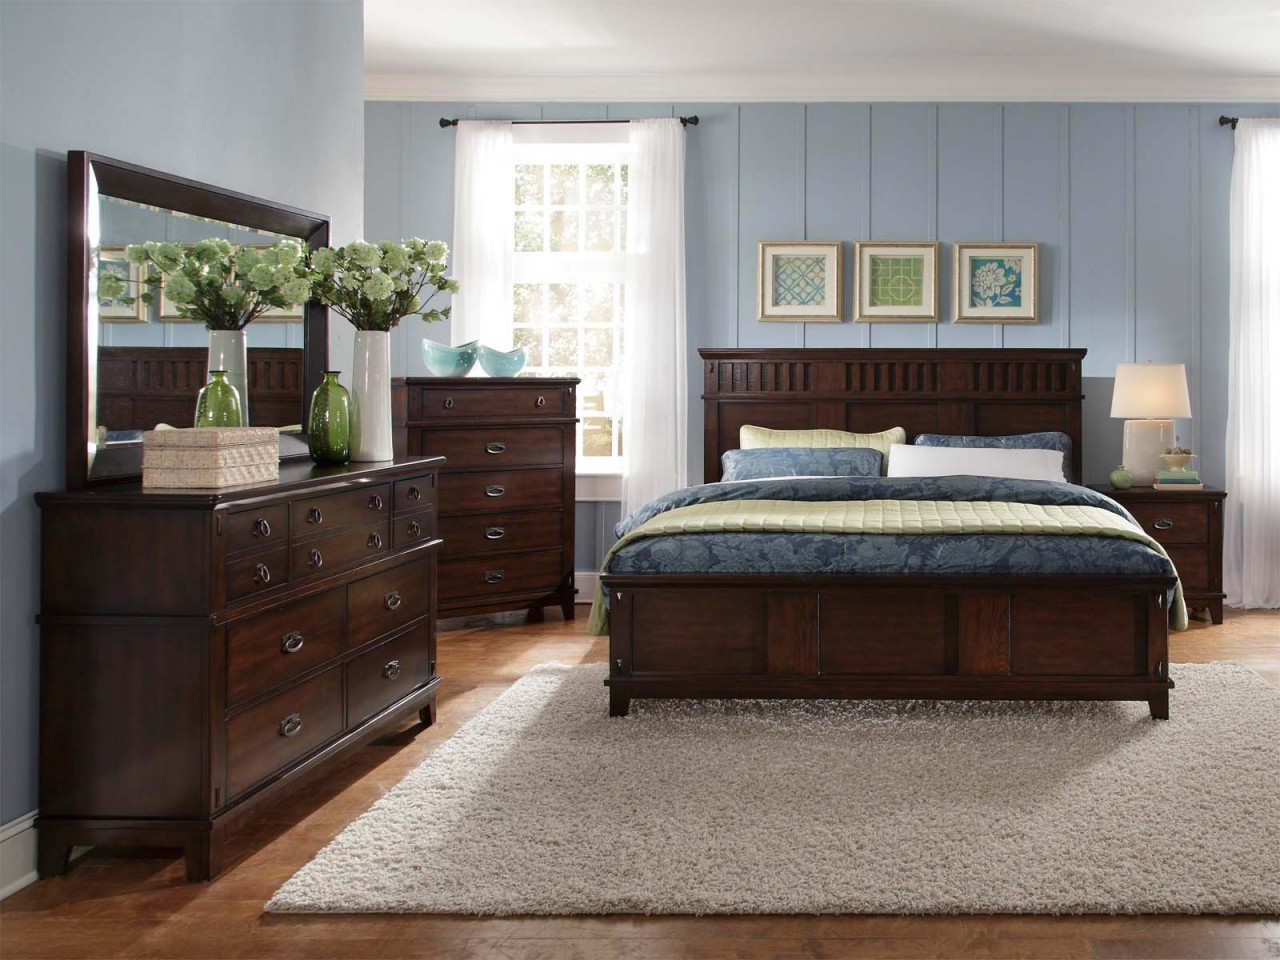 Amazing Awesome Dark Wood Bedroom Furniture 14 with Dark Wood Bedroom Furniture dark wood bedroom furniture sets